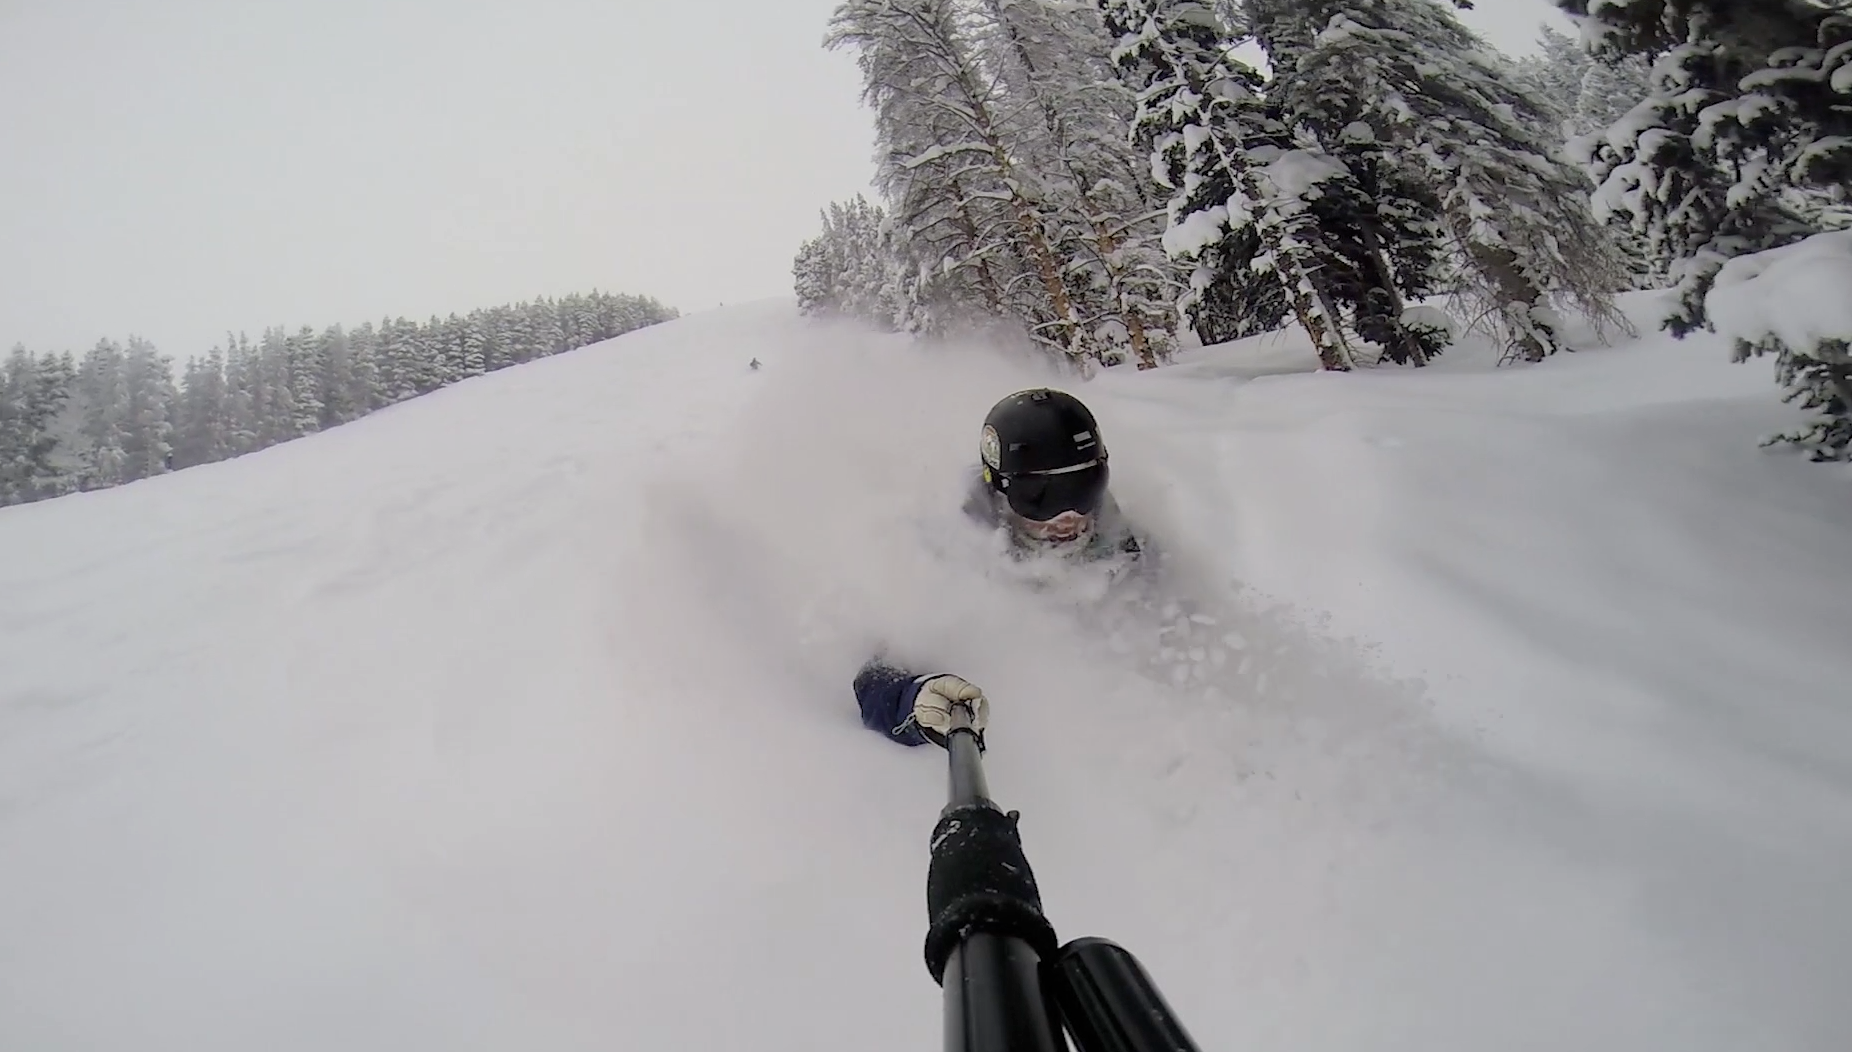 Deep Powder 1.31.14